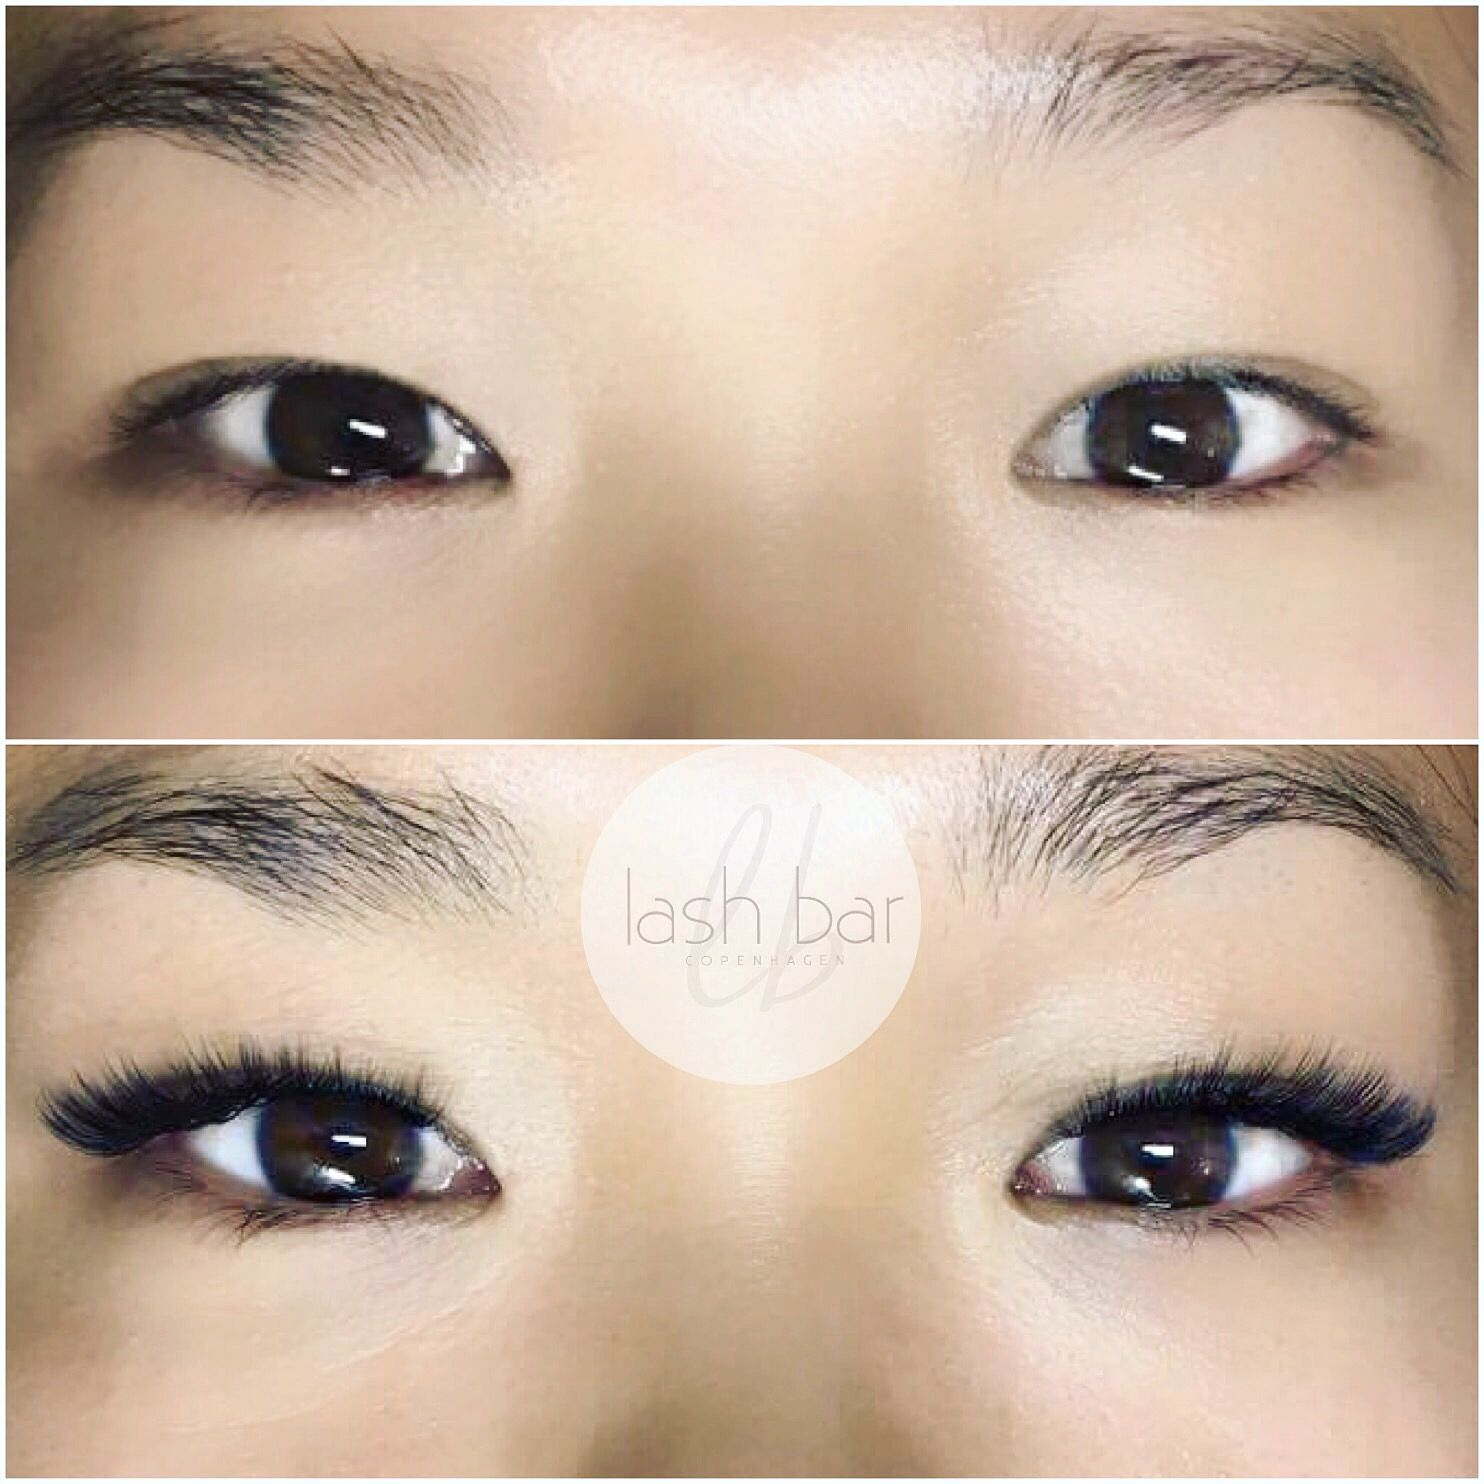 Asian eyes & volume lashes at Lash Bar Copenhagen | Lashes ...